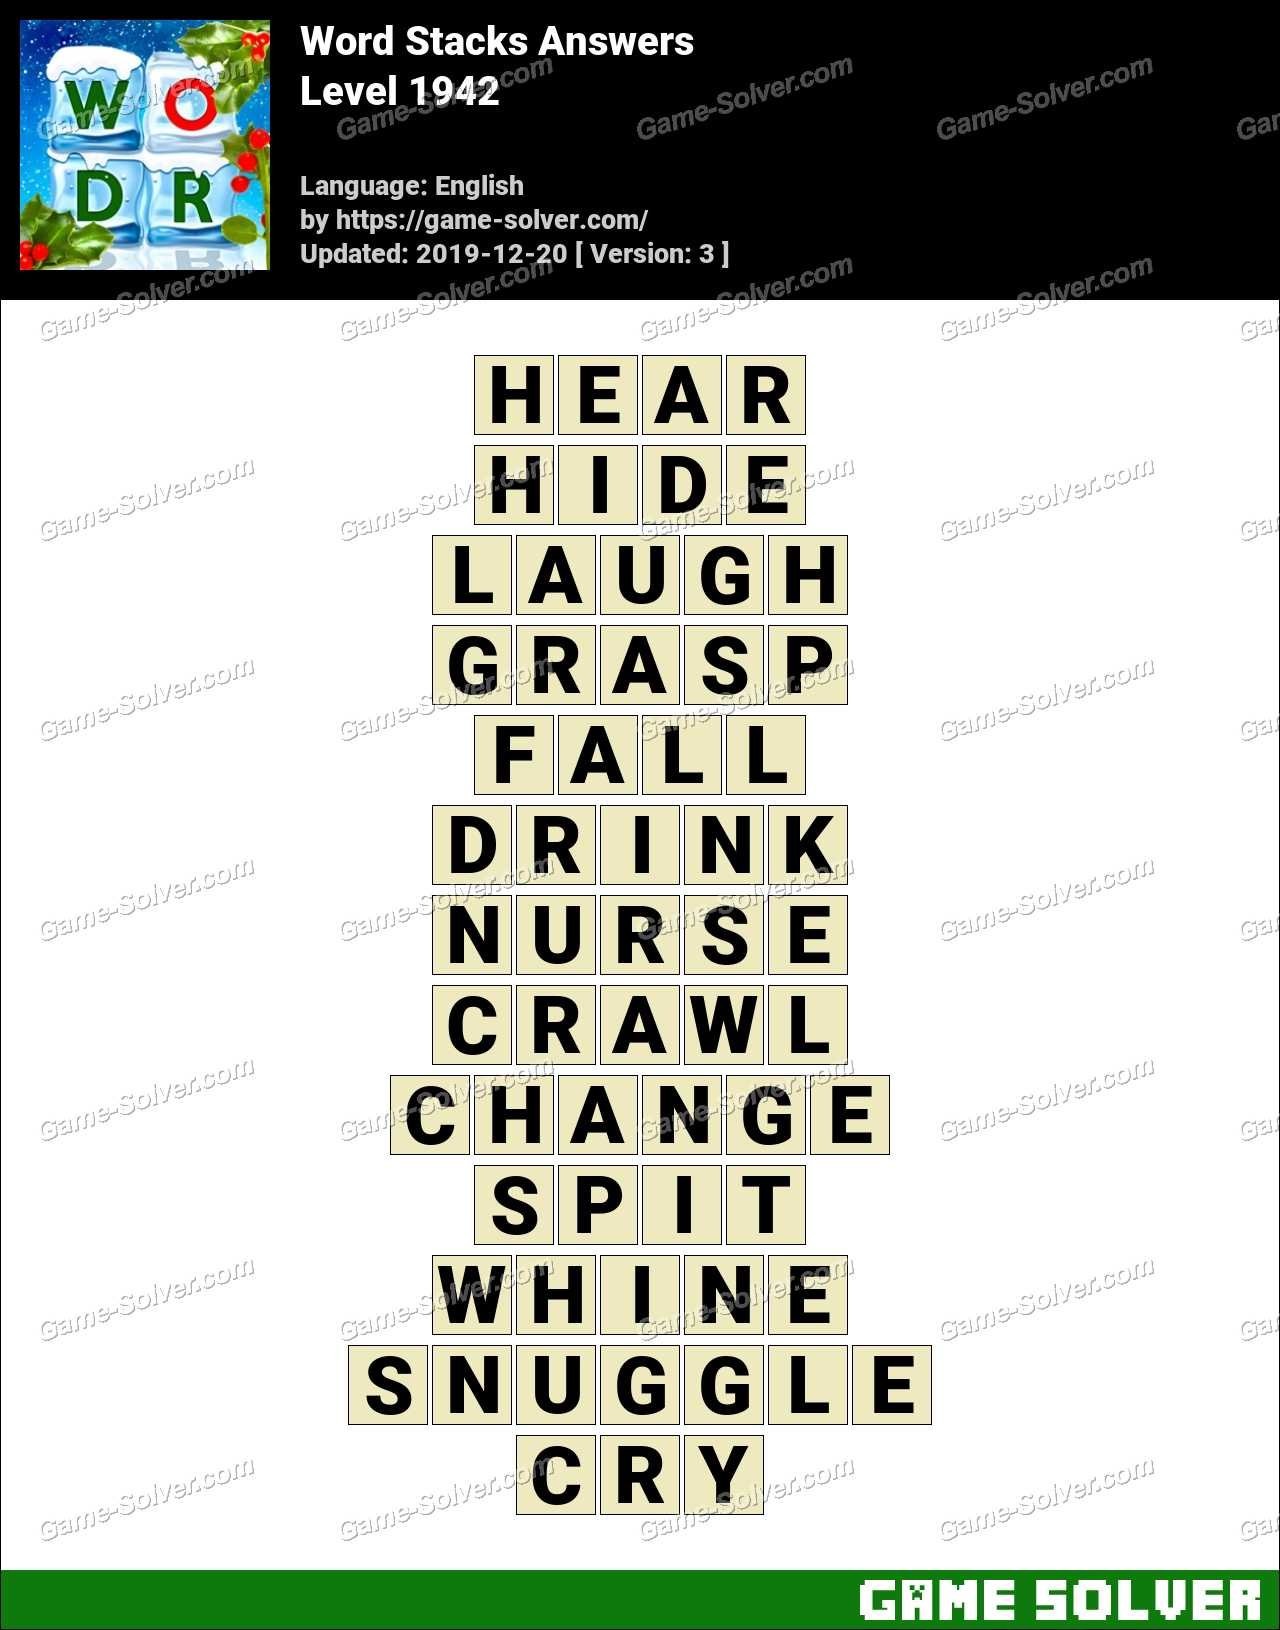 Word Stacks Level 1942 Answers